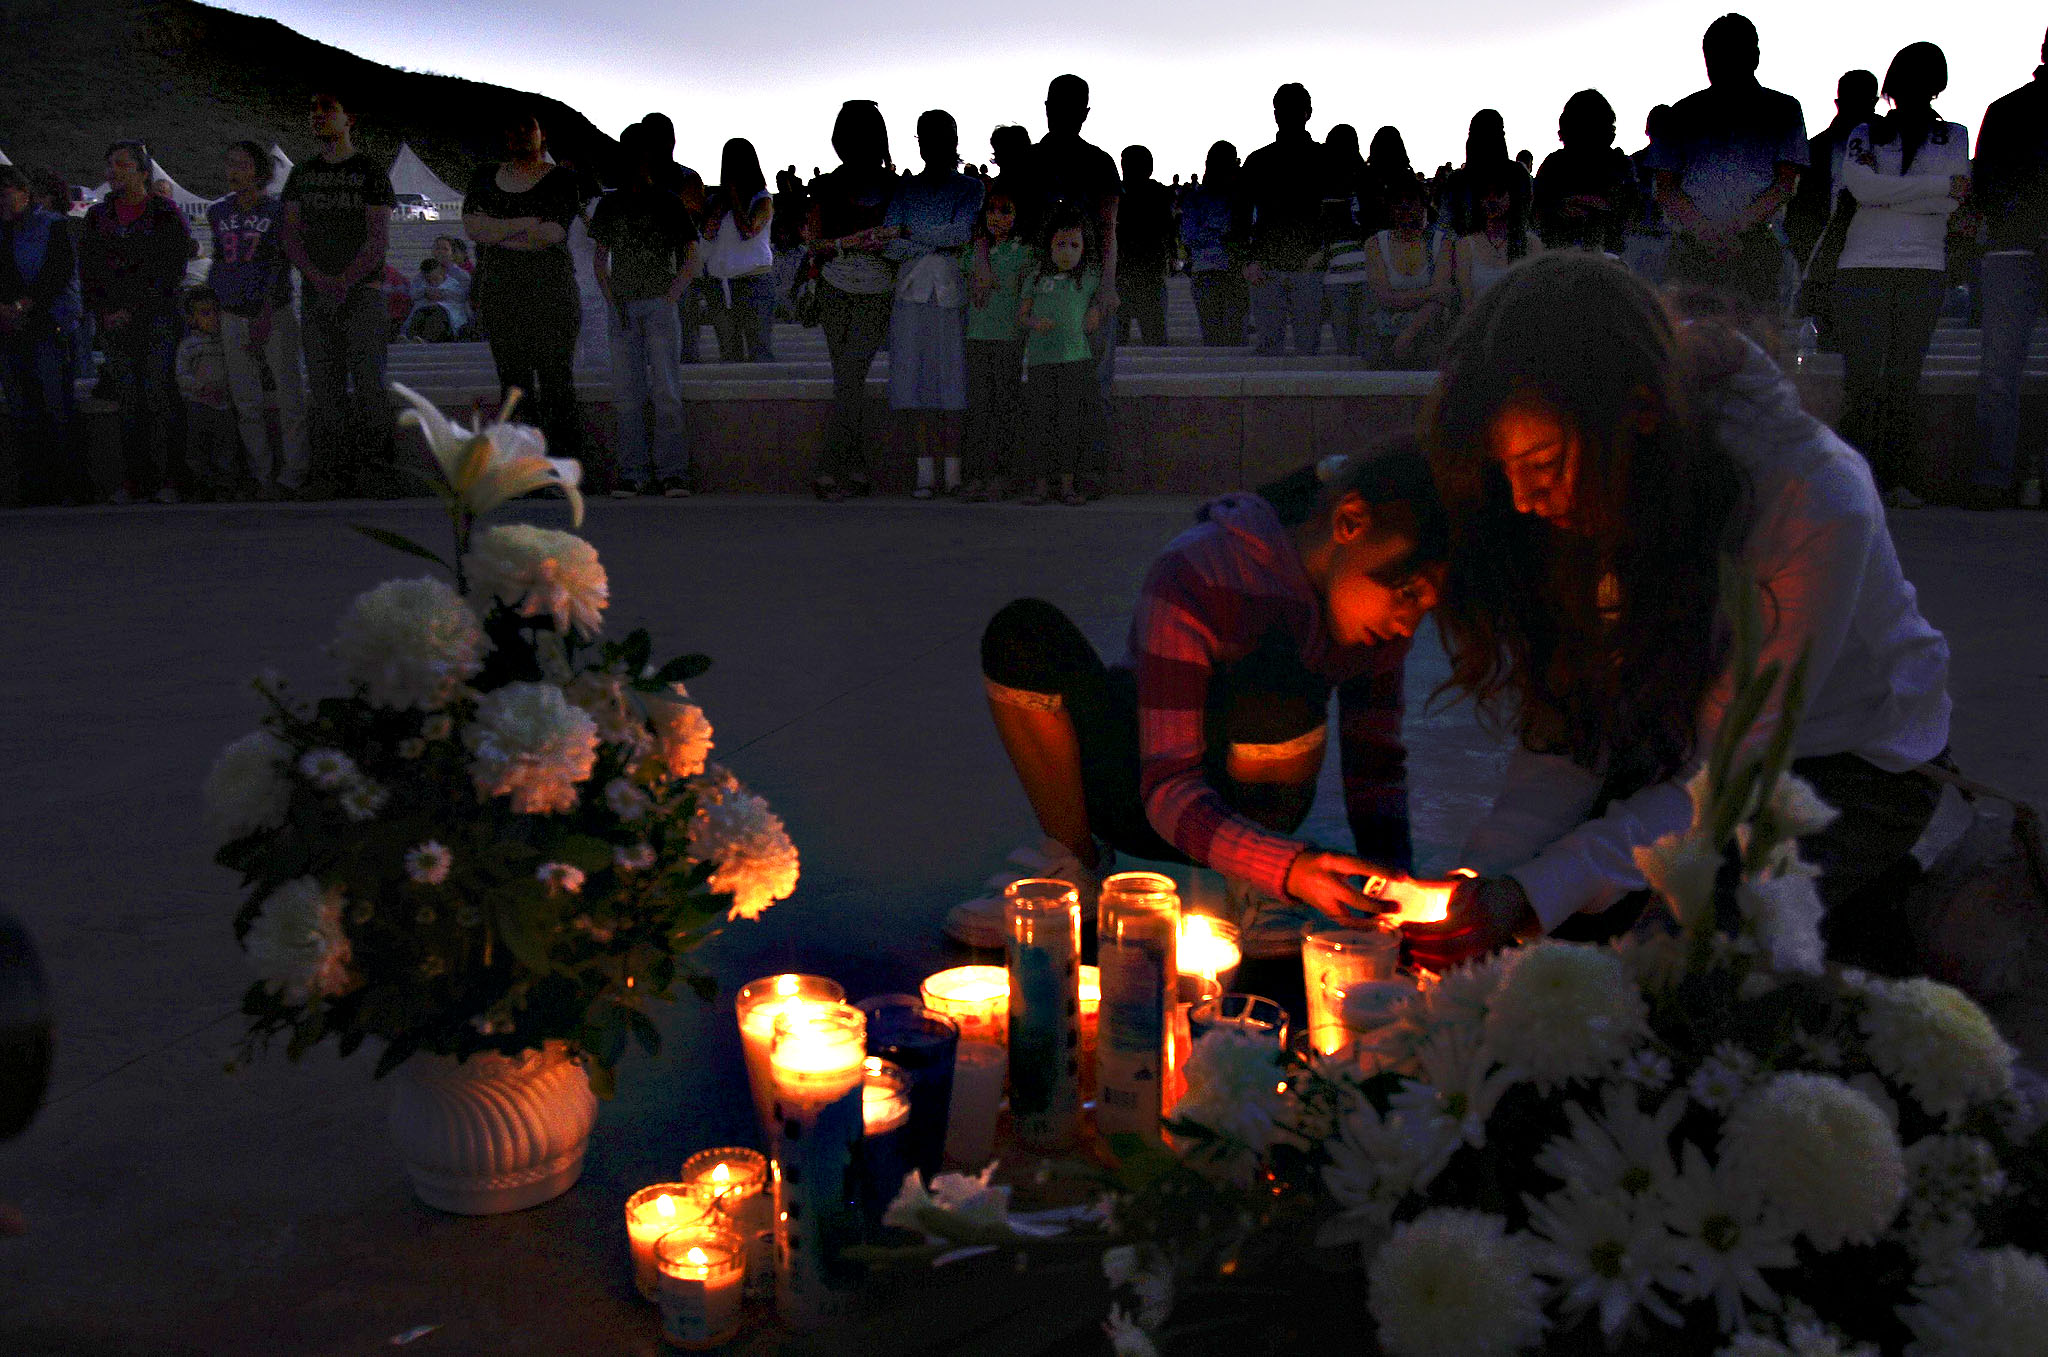 Girls light candles during a candlelight vigil for the victims of a monster truck that ploughed into a crowd of spectators during a show at El Rejon park in Chihuahua...Girls light candles during a candlelight vigil for the victims of a monster truck that ploughed into a crowd of spectators during a show at El Rejon park, on the outskirts of Chihuahua October 6, 2013. Eight people, including four children, were killed and 79 injured when a monster truck careened into a crowd at a show in northern Mexico, an official at the public prosecutor's office in the city of Chihuahua said on Sunday. The incident late on Saturday afternoon took place at the El Rejon dam on the outskirts of the city, about 230 miles (370 km) south of Mexico's border with the United States.